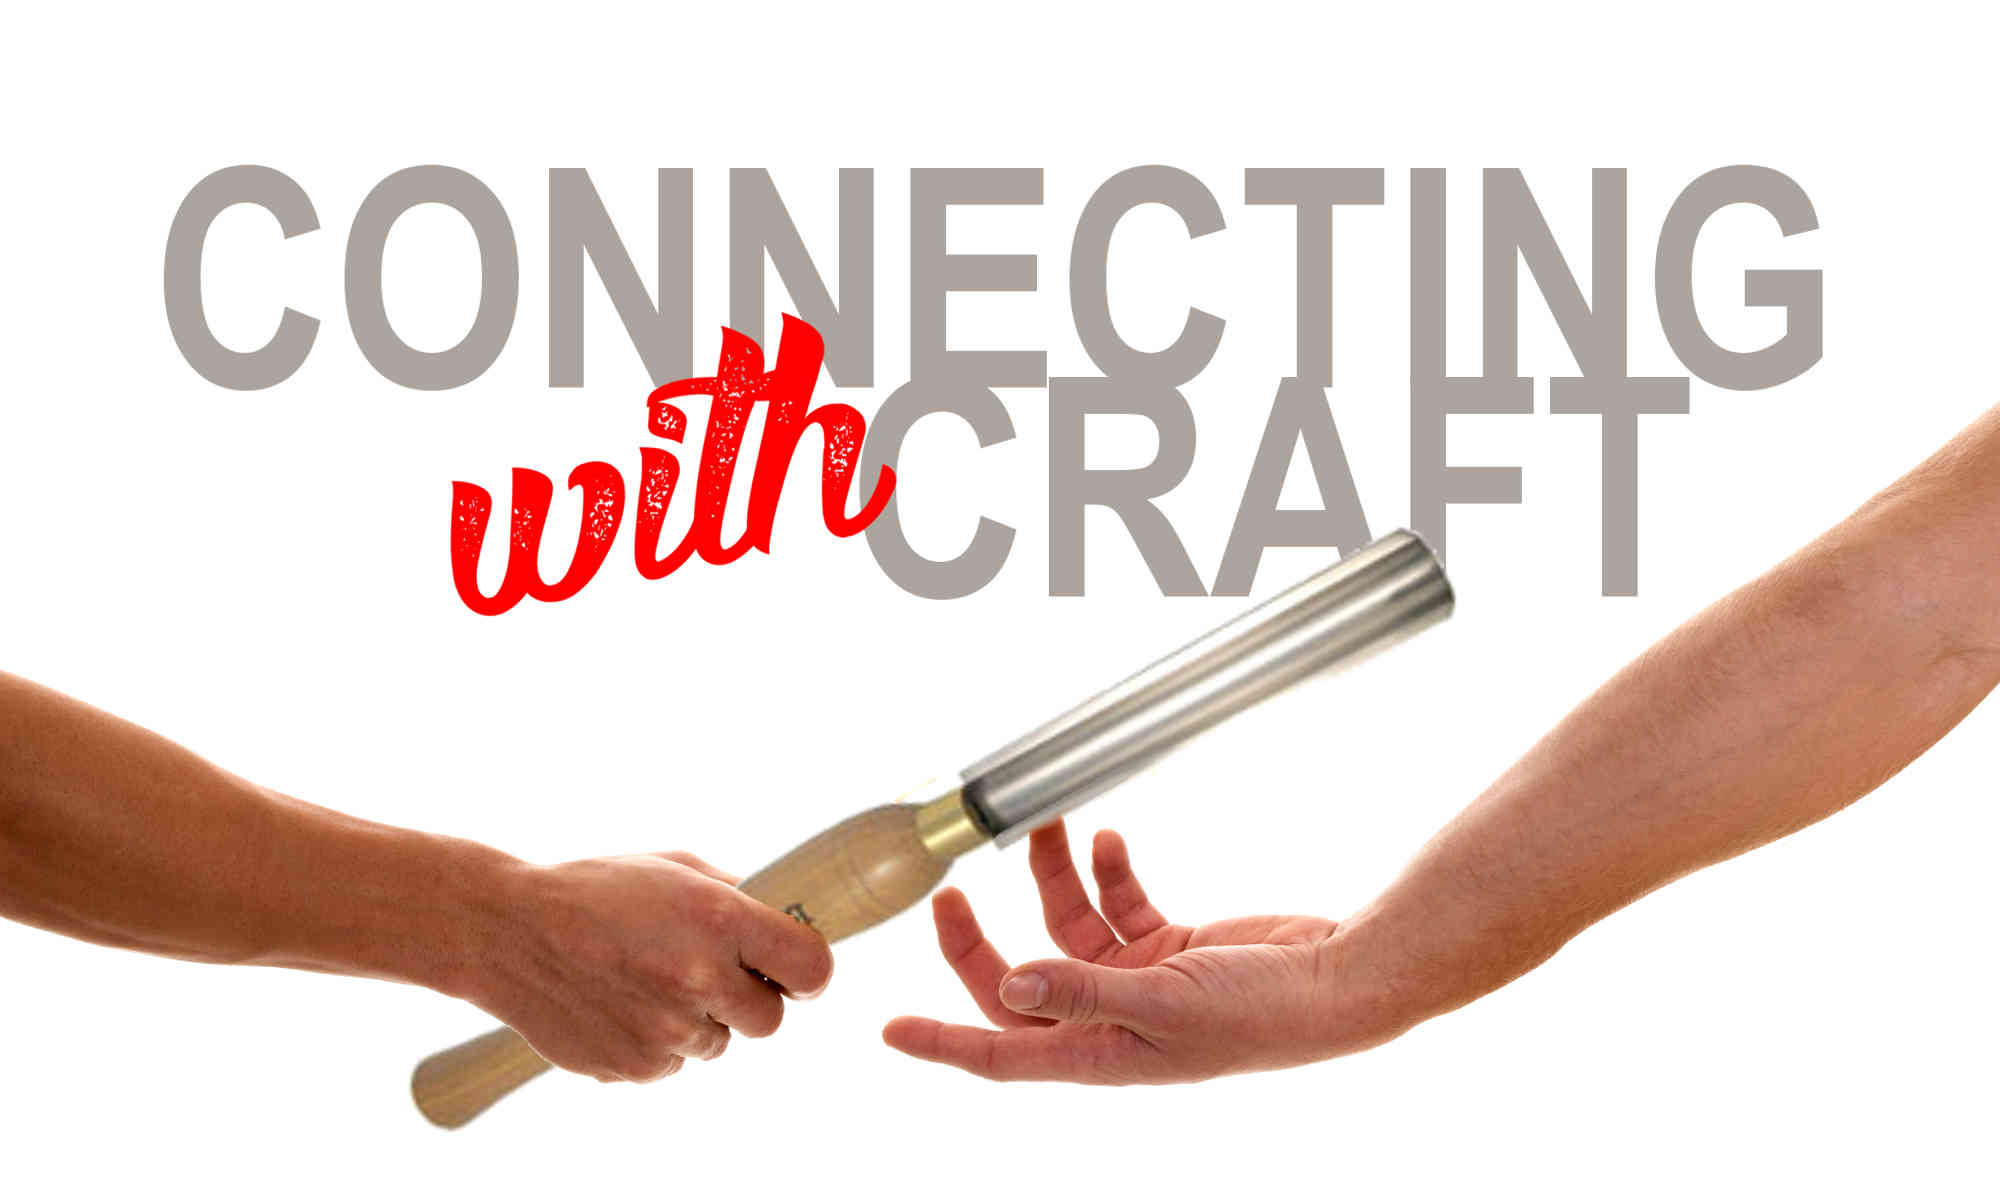 Connecting With Craft